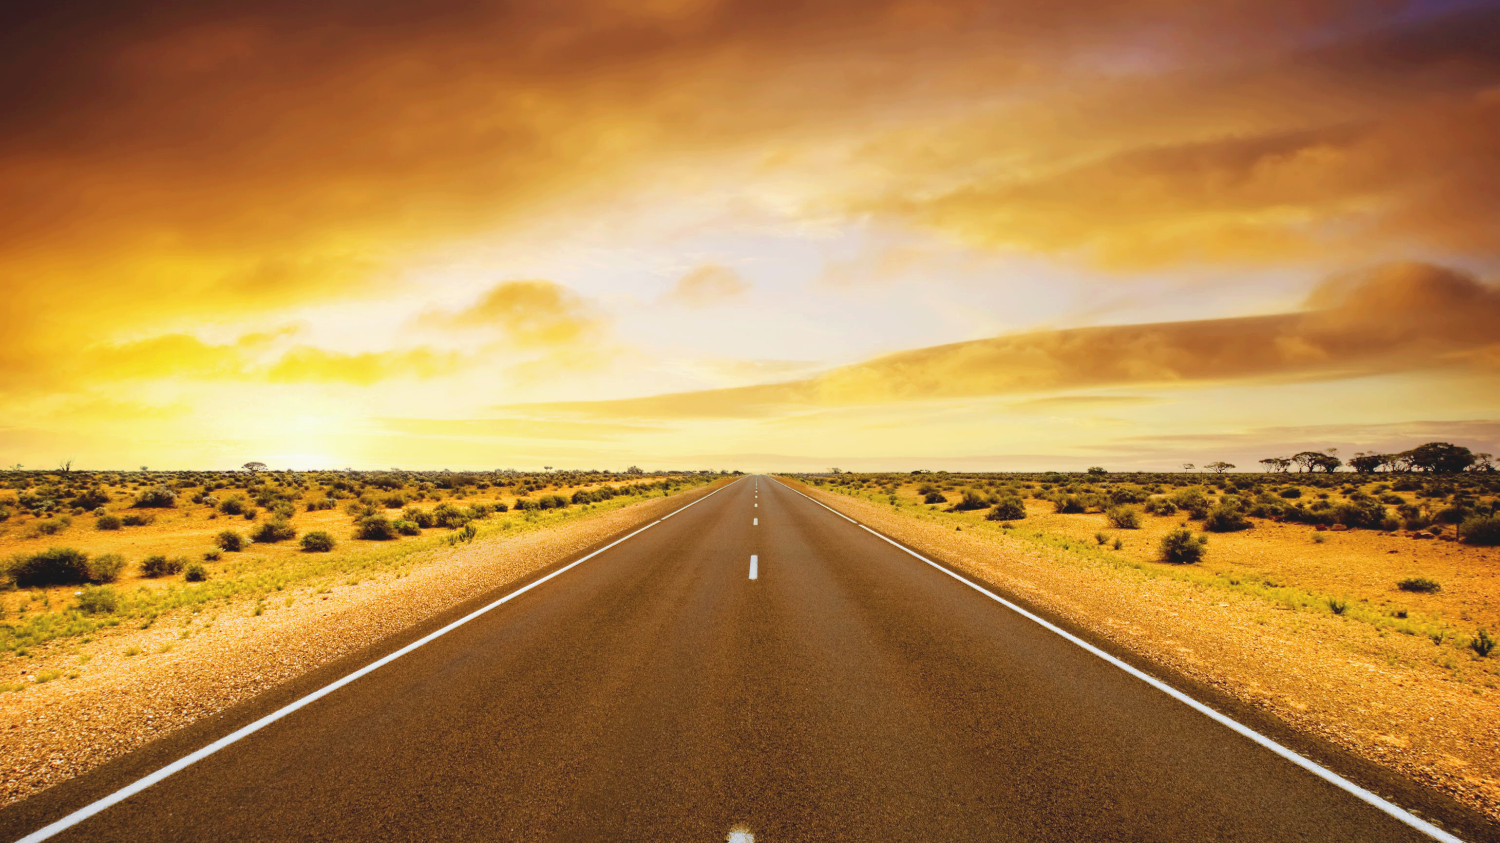 road background images - photo #15